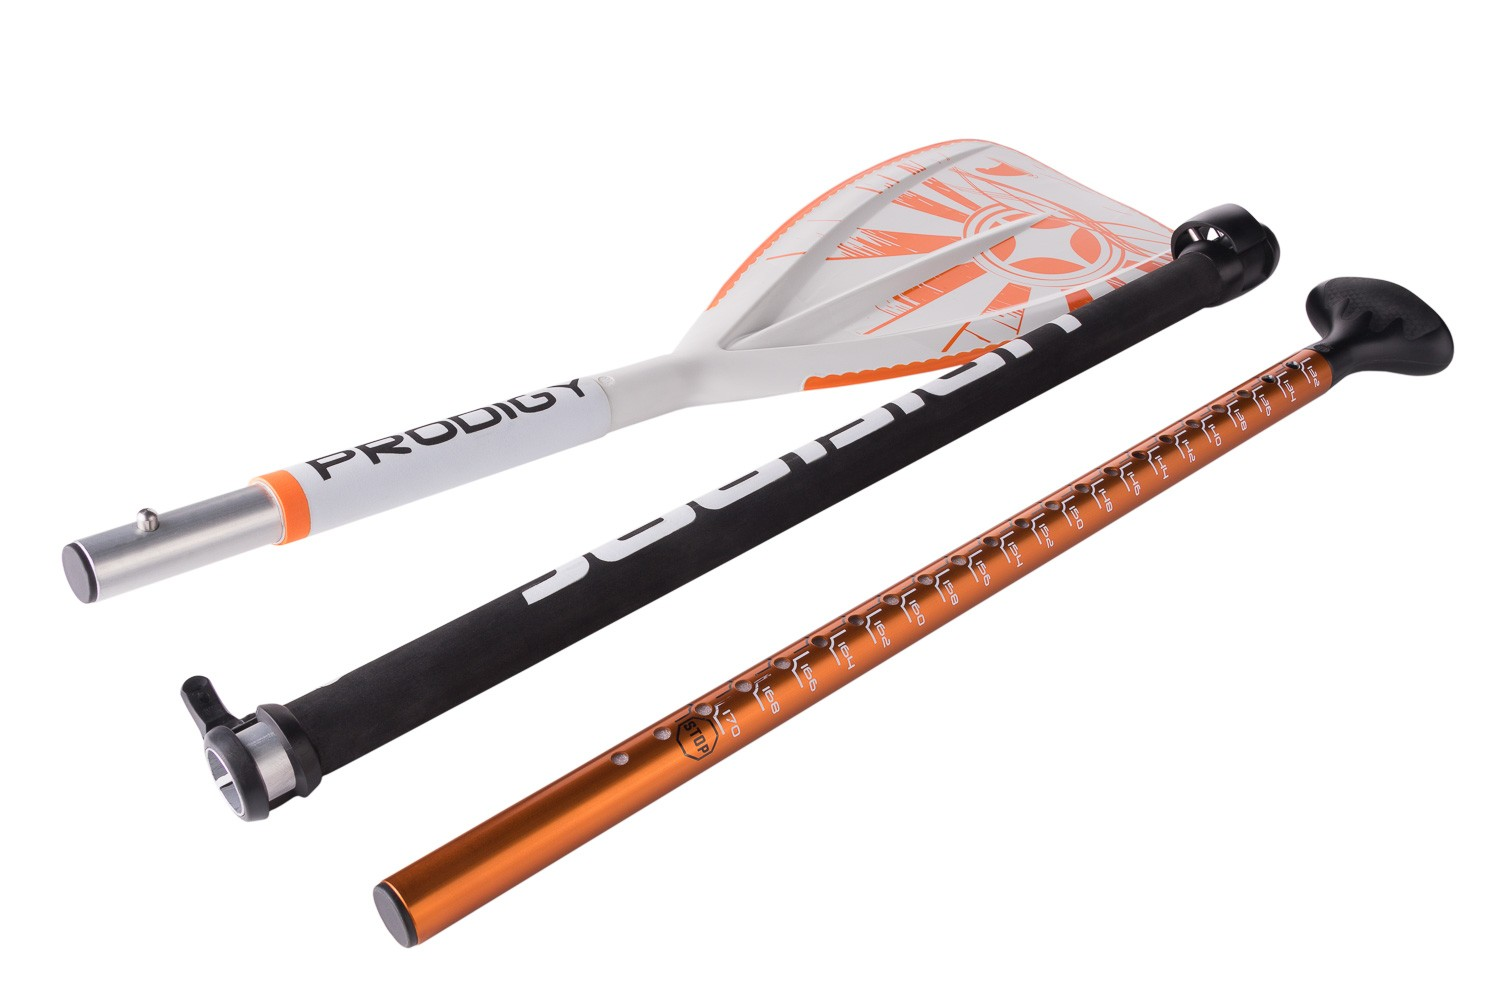 Aluminium Sup T6 Paddle 3 PC Prodigy 130 - 170